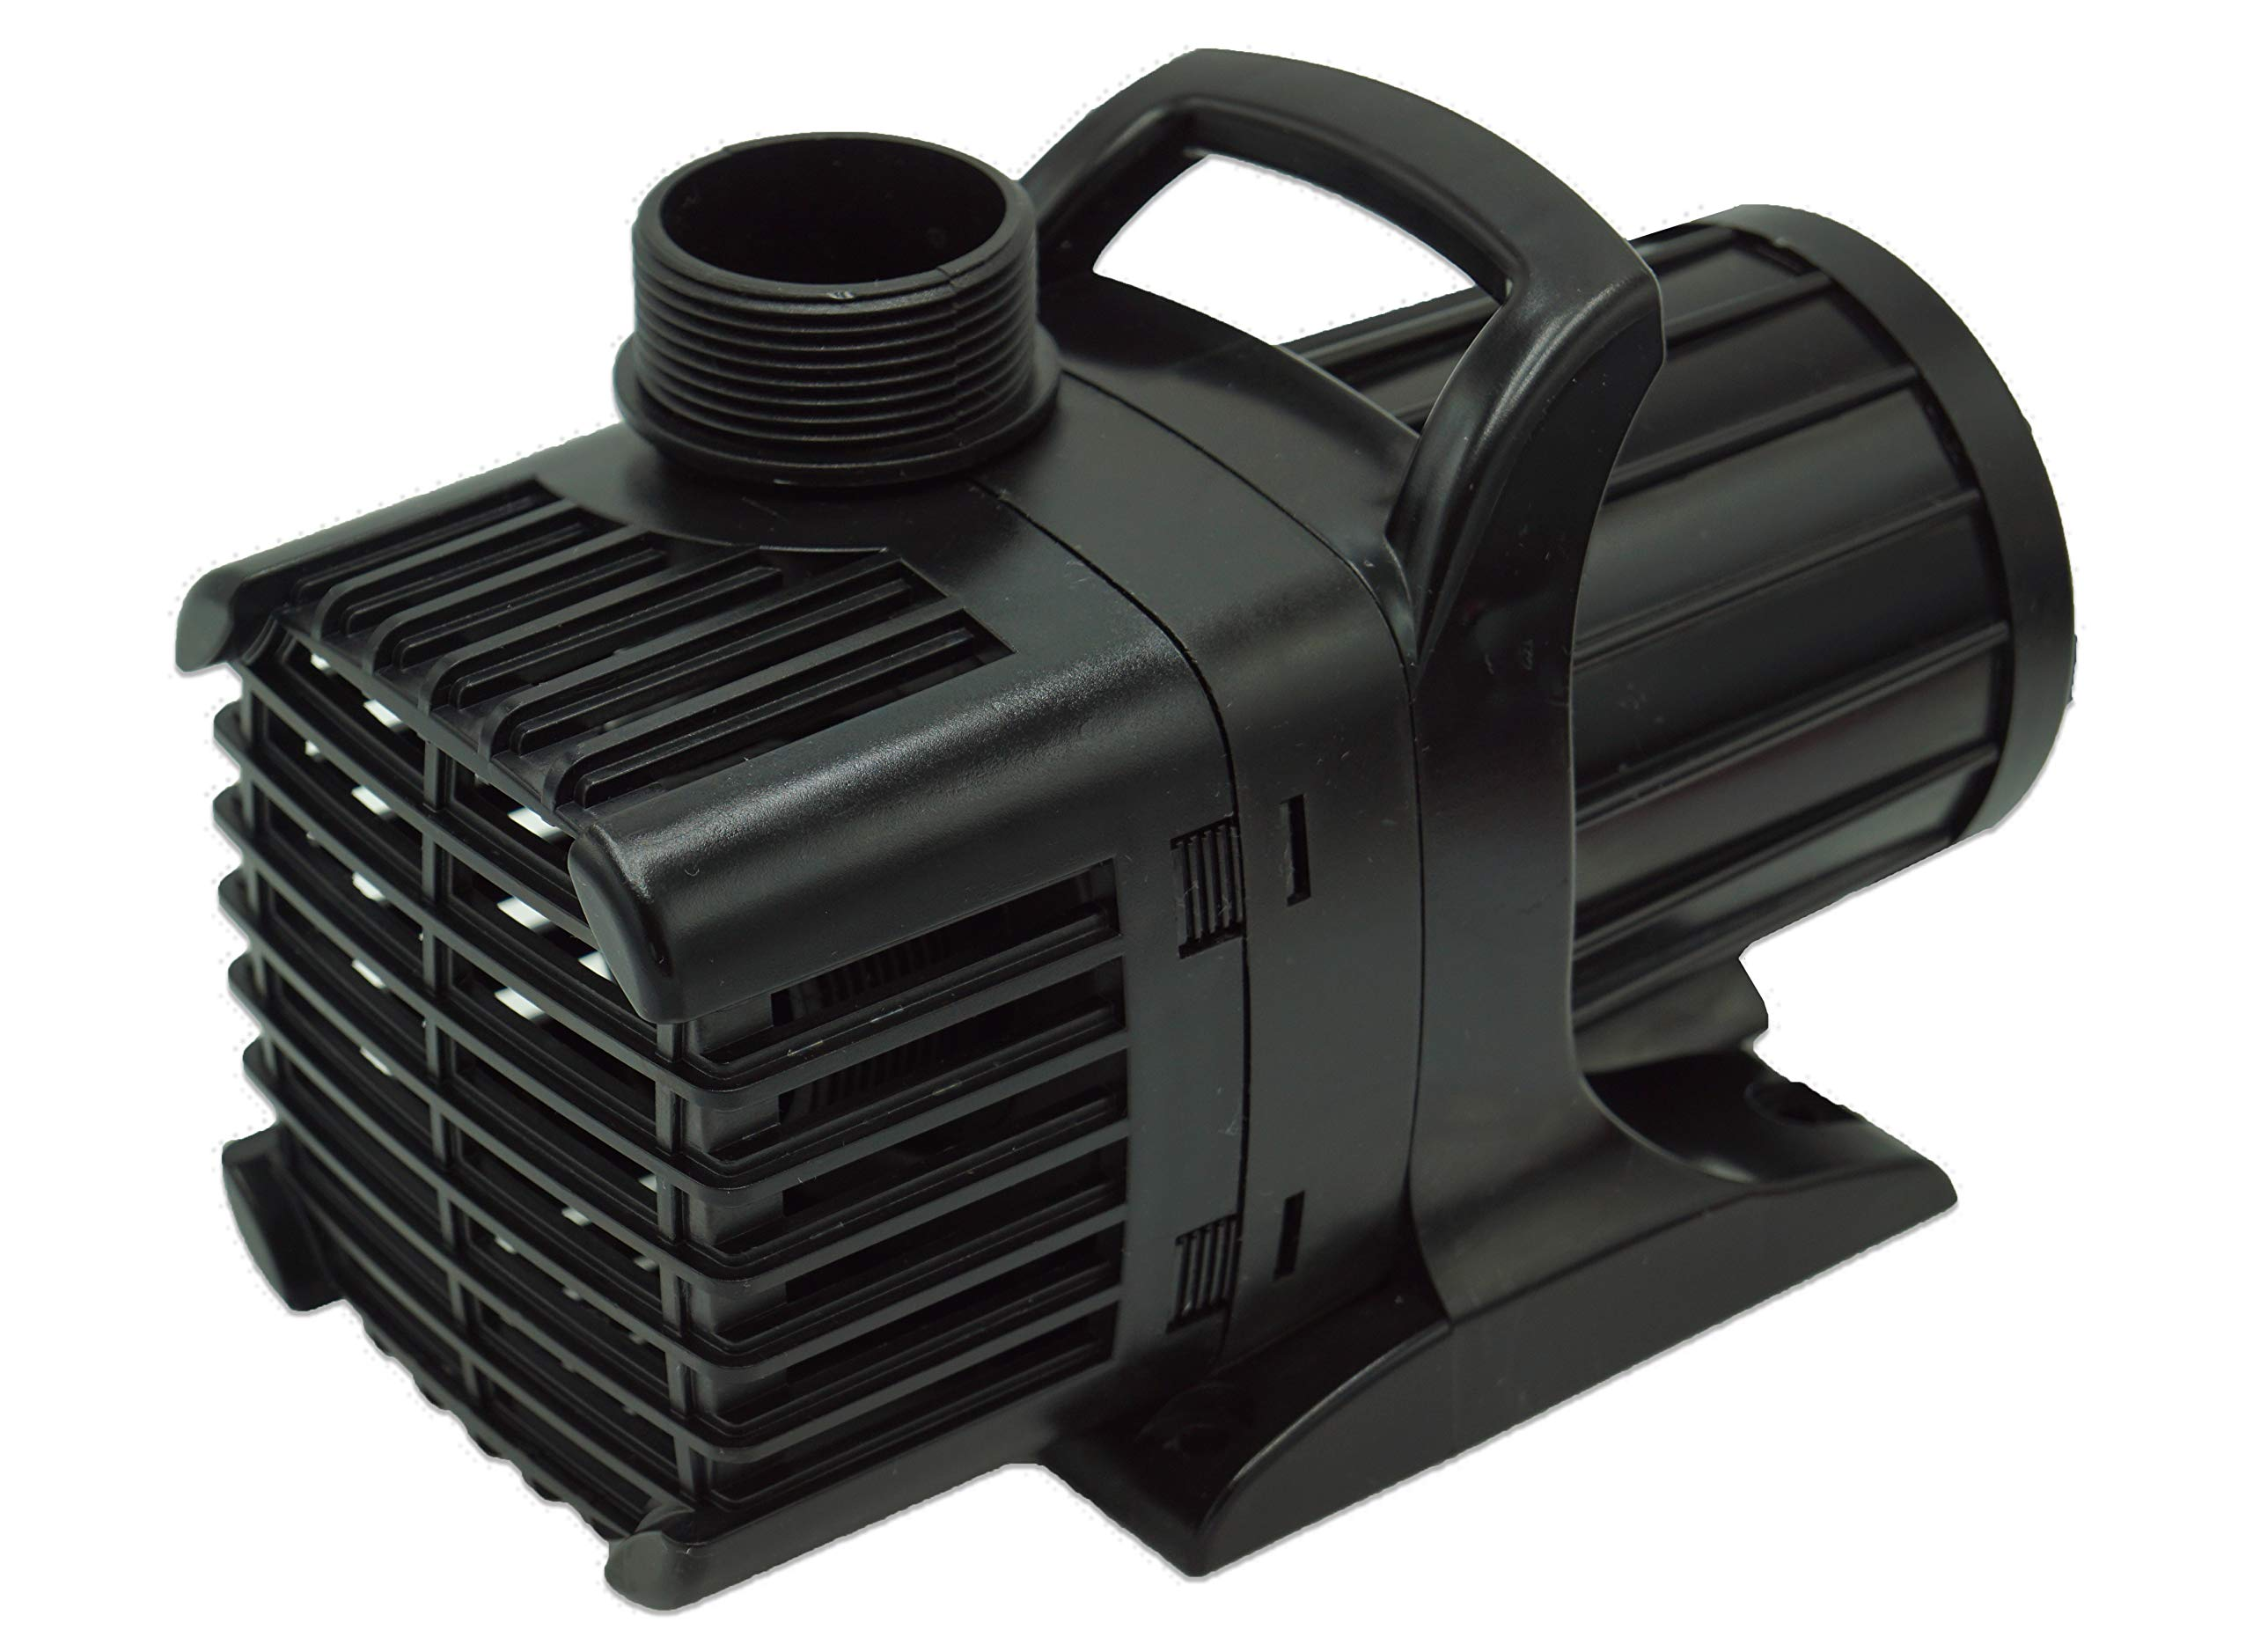 Aqua Pulse 3,000 GPH Submersible Pump with 100 Foot Cord for Ponds, Water Gardens, Pondless Waterfalls and Skimmers